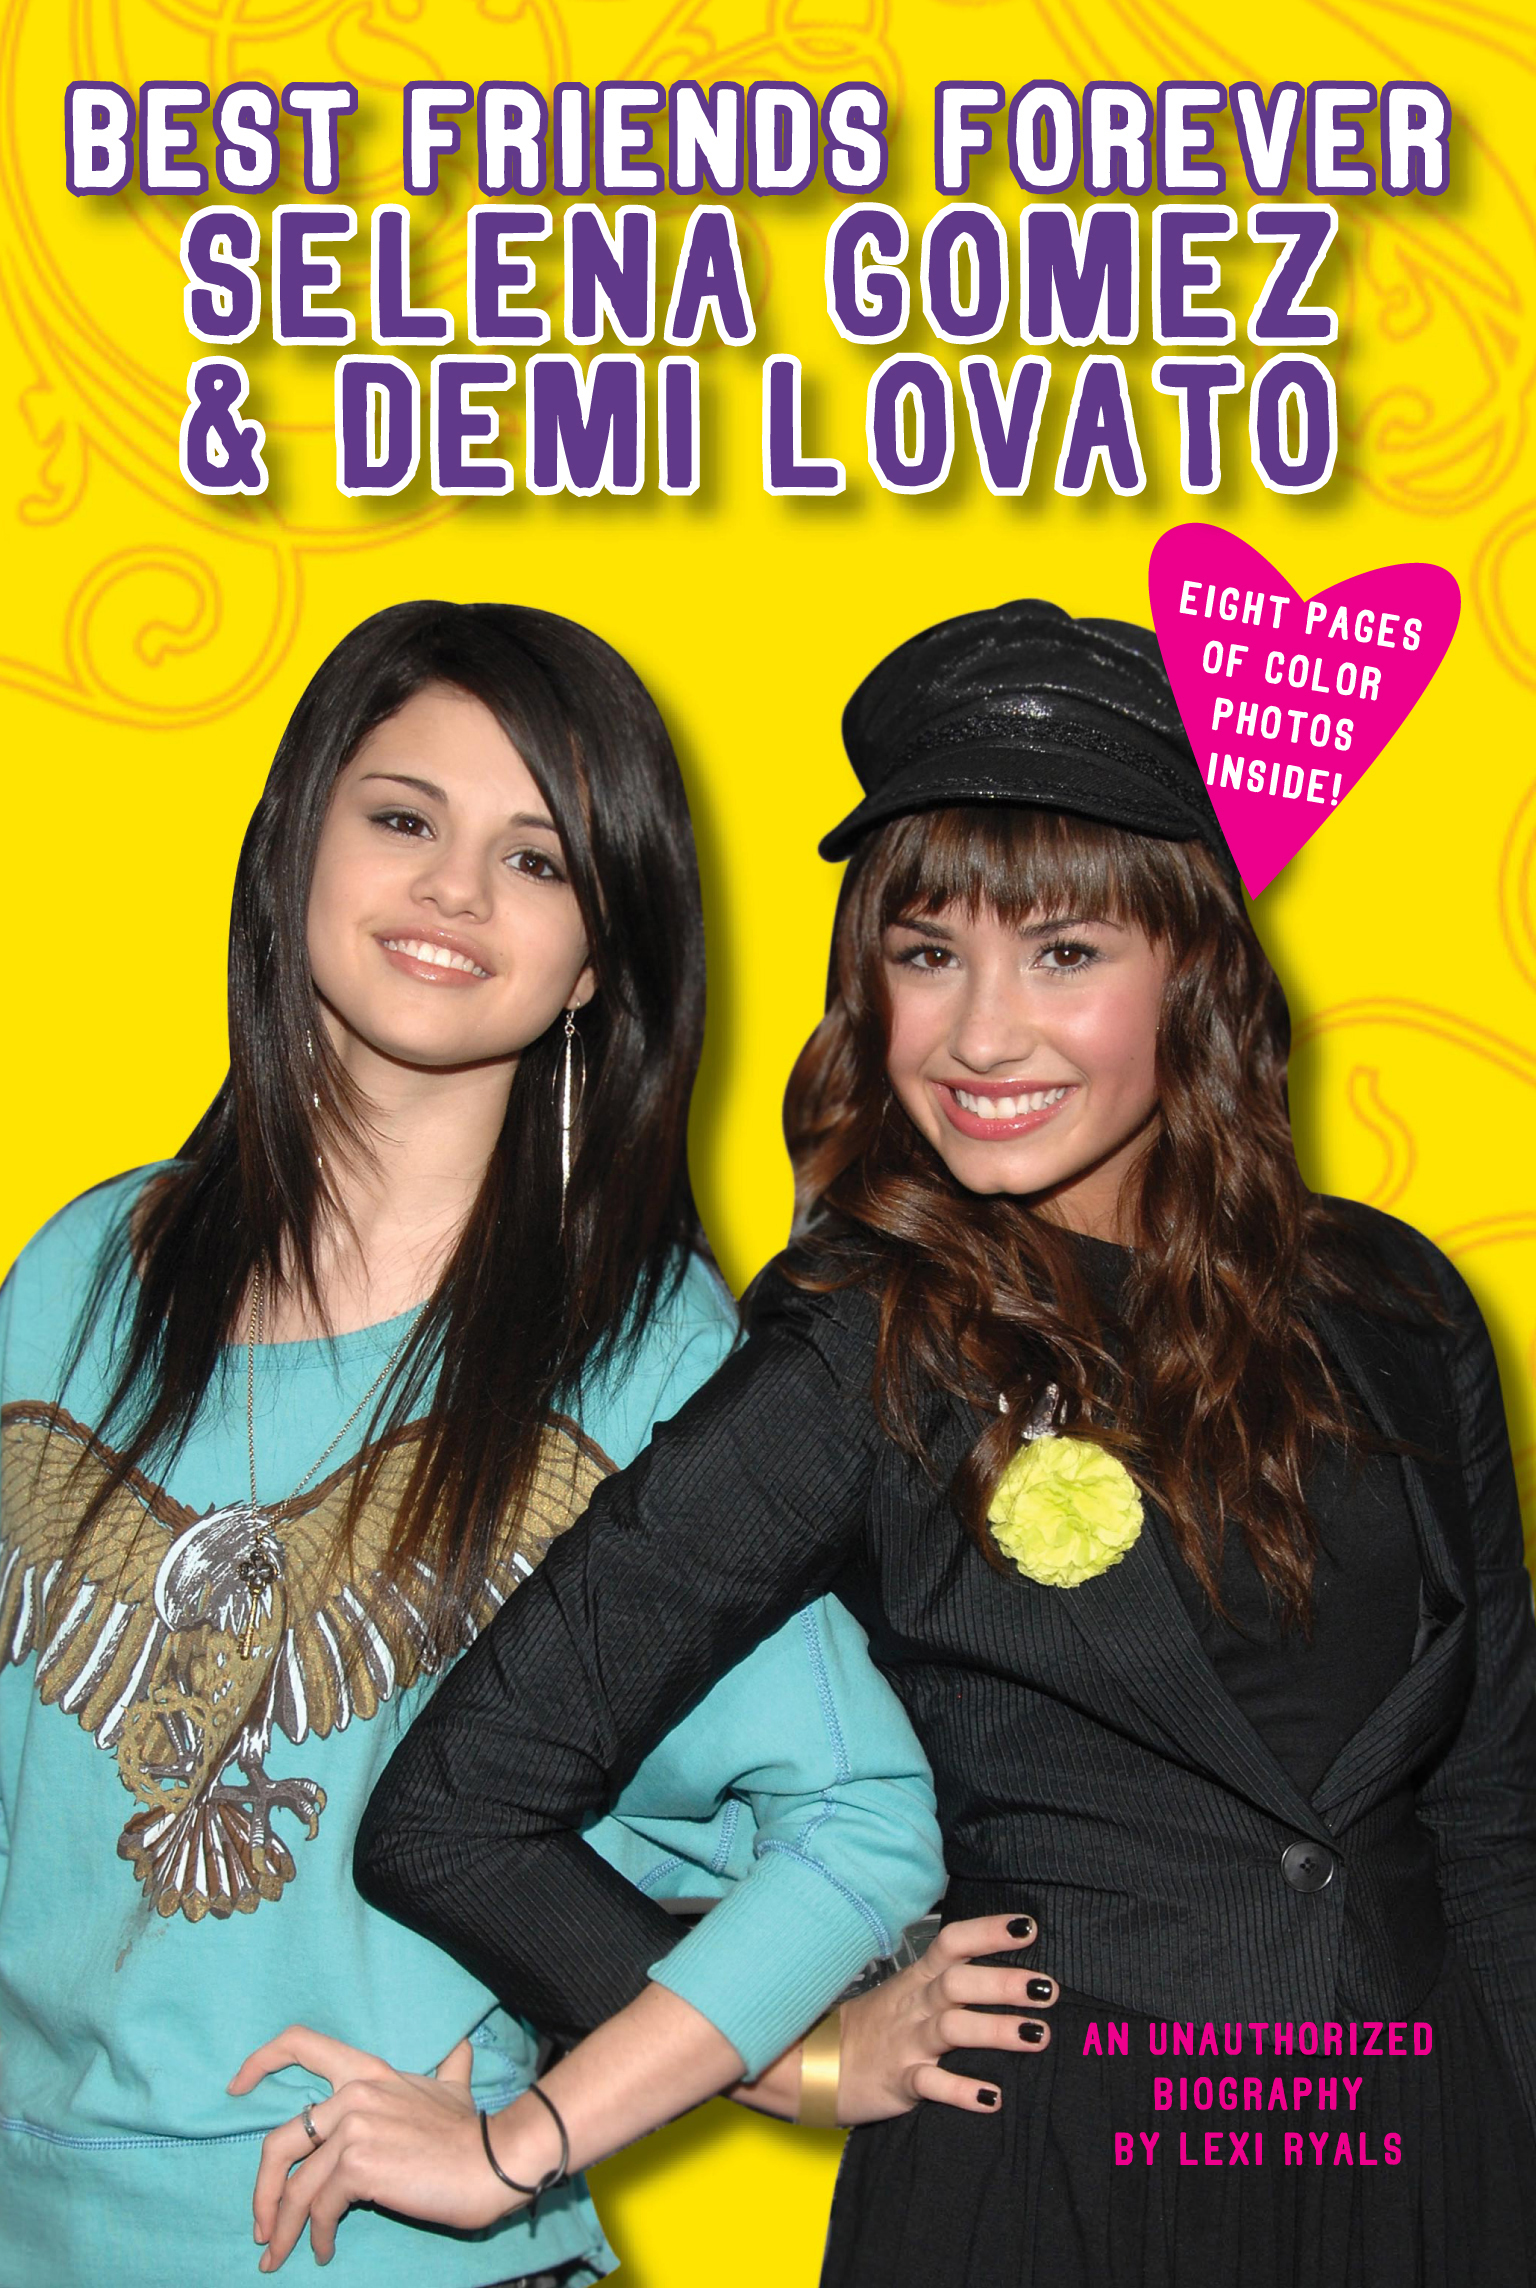 Best Friends Forever: Selena Gomez & Demi Lovato By: Lexi Ryals